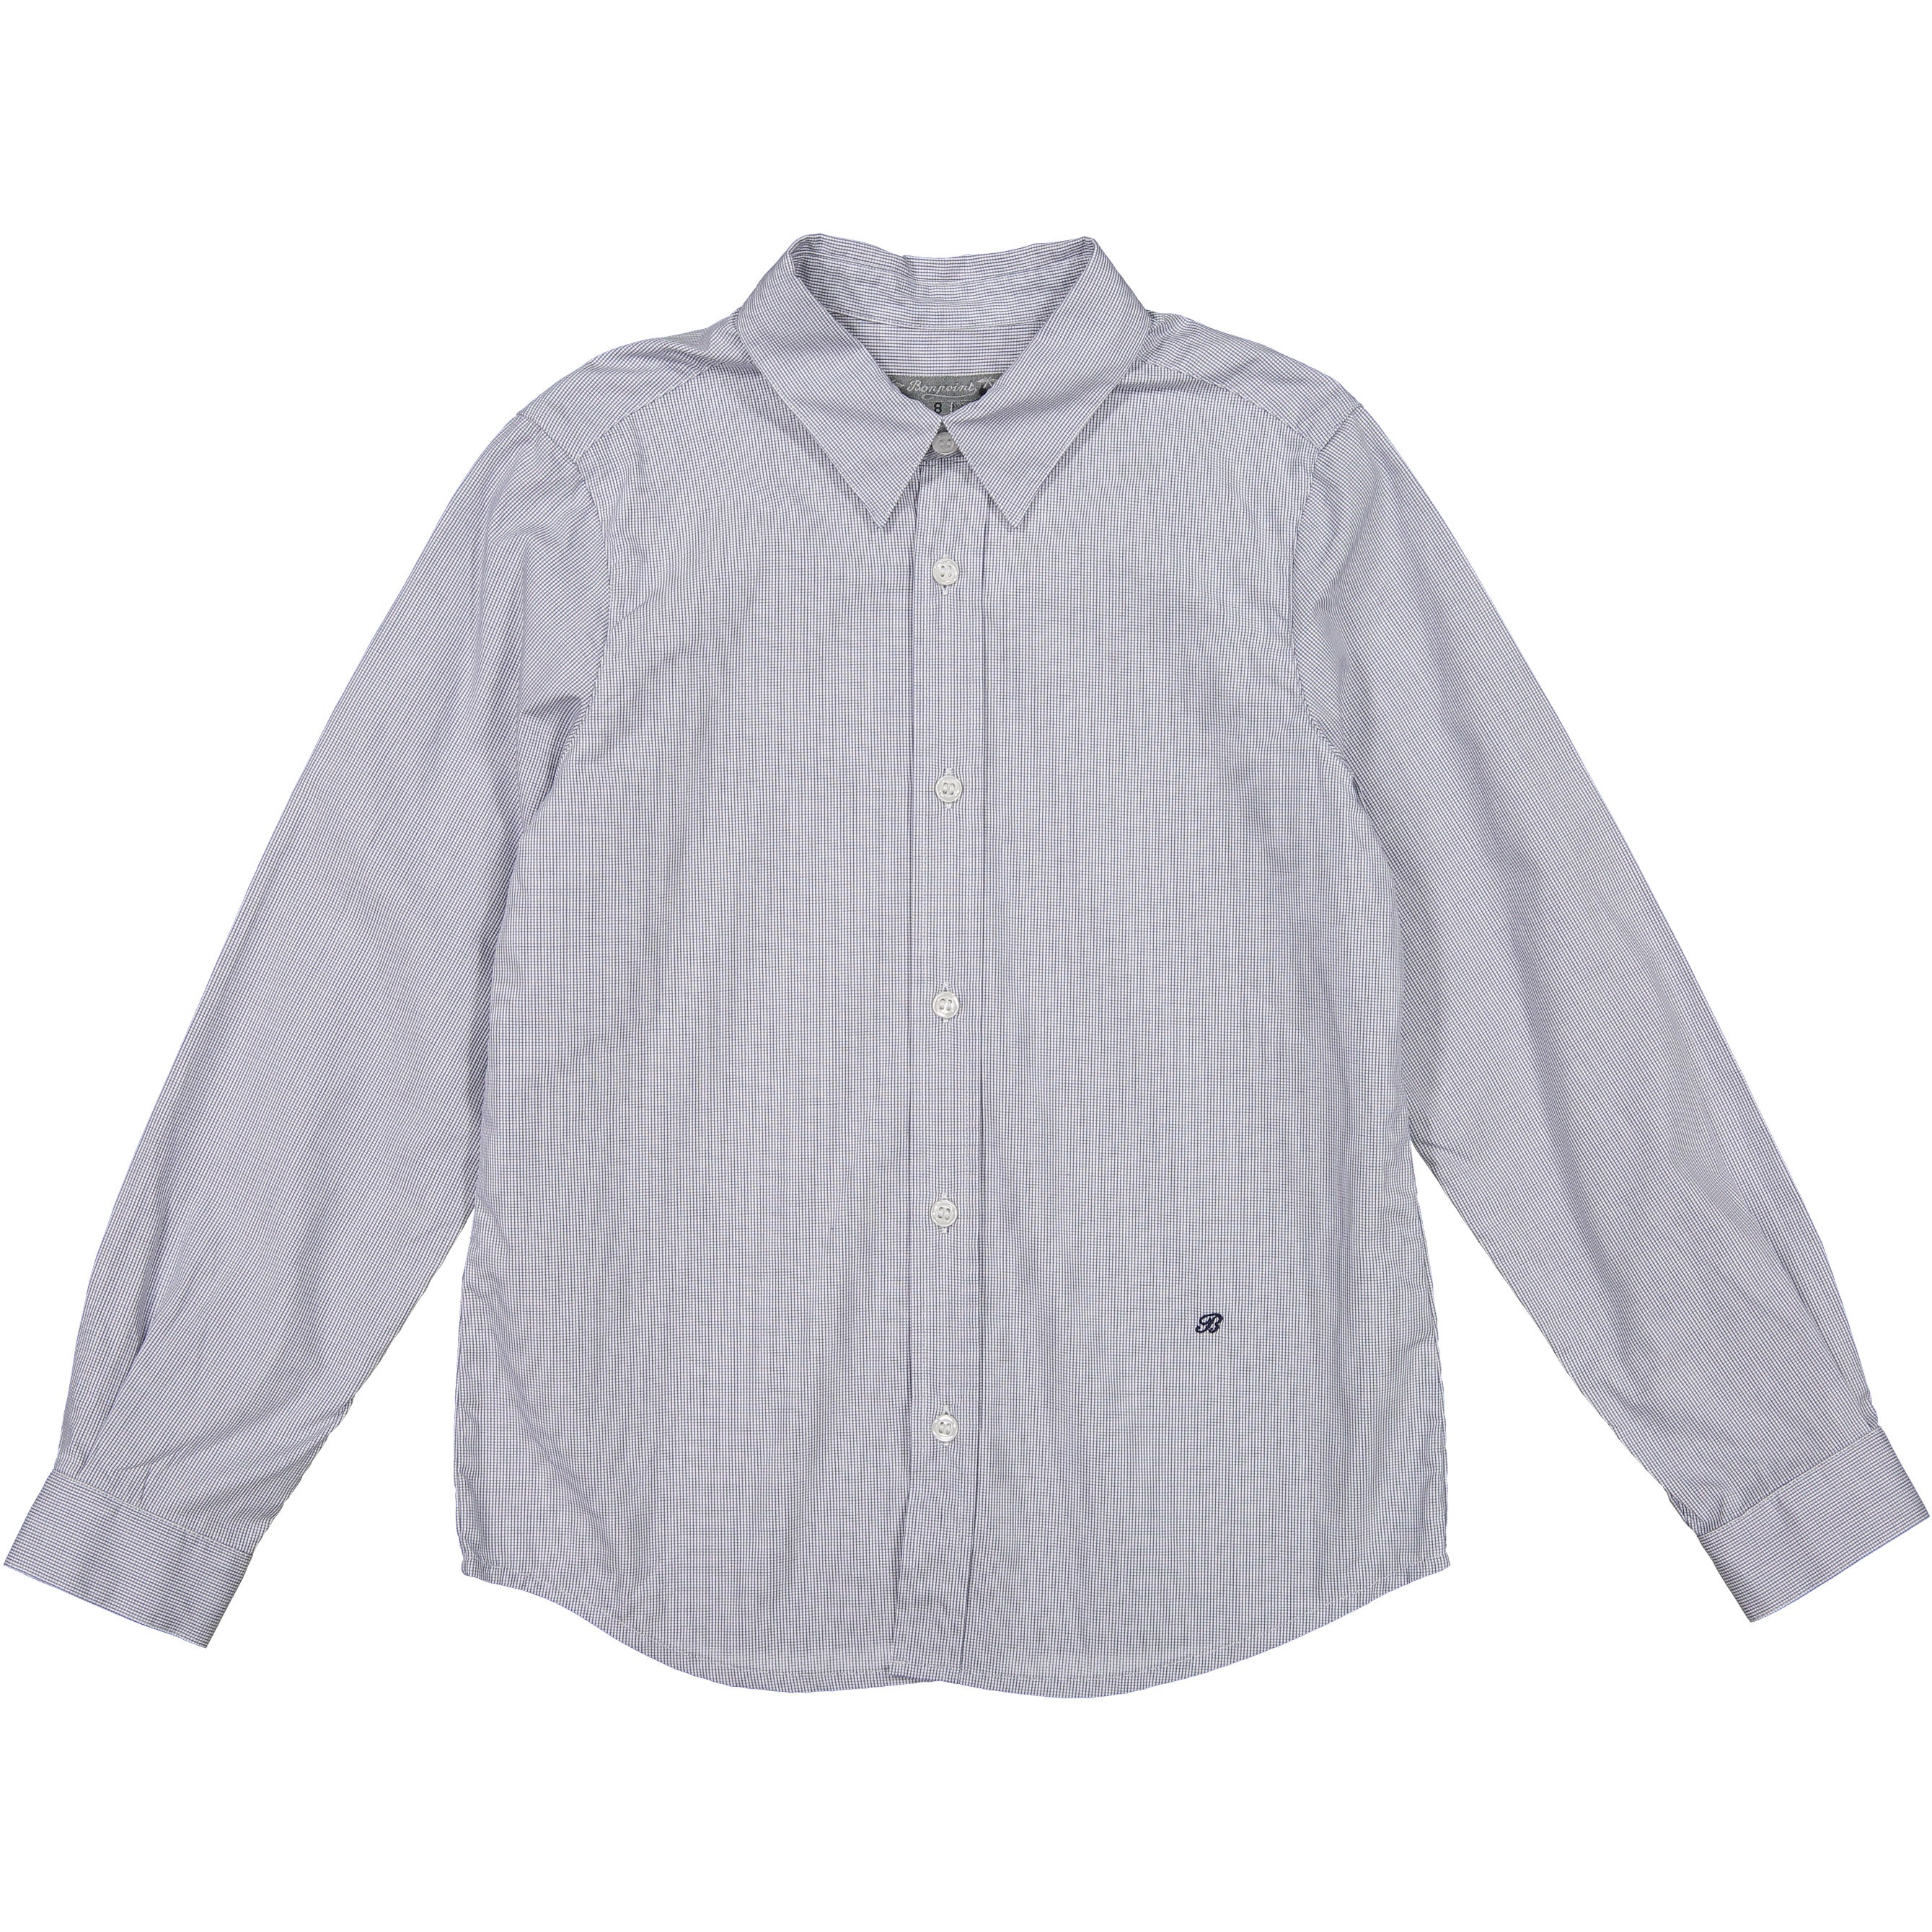 Bonpoint Navy Small Check Shirt - Ladida